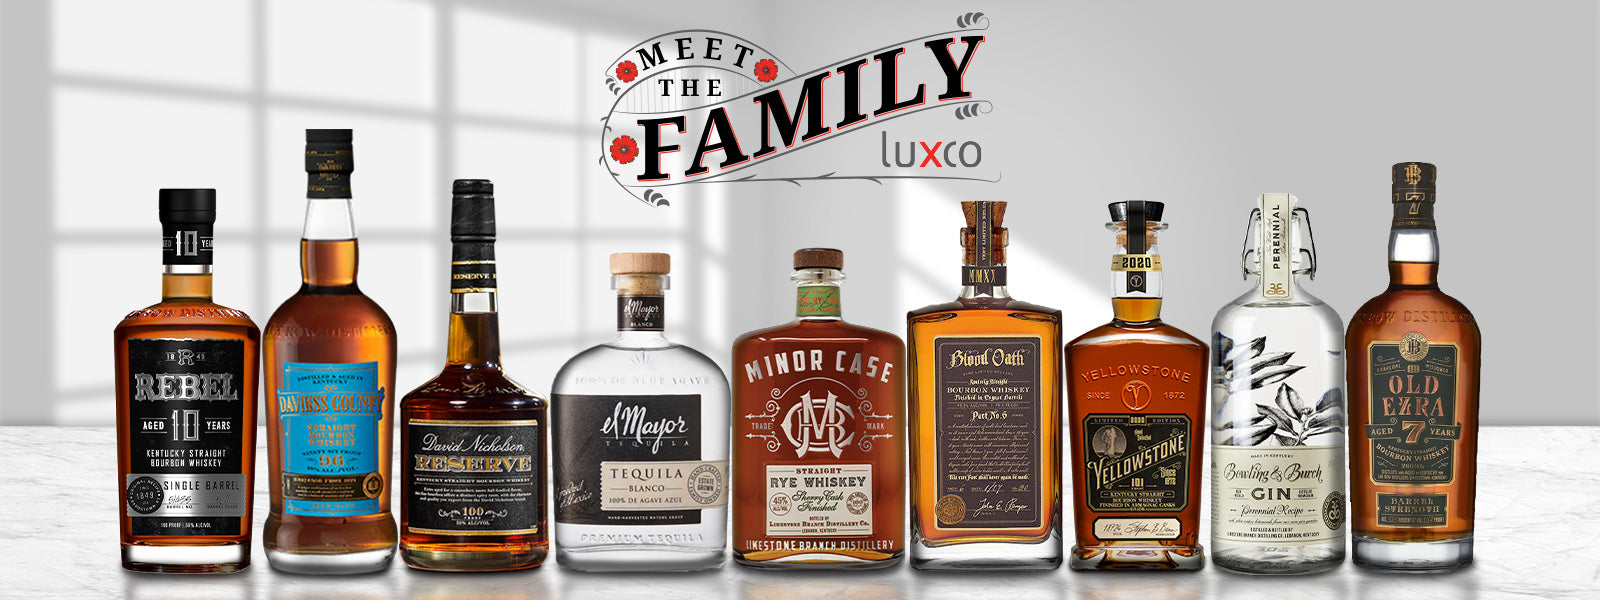 Buy Luxco Spirits, Yellowstone, El Mayor, Rebell Yell, Bowling and Burch, Blood Oath, David Nicholson, Old Ezra, and Minor Case Whiskey Tequila and Gin Online at CaskCartel.com